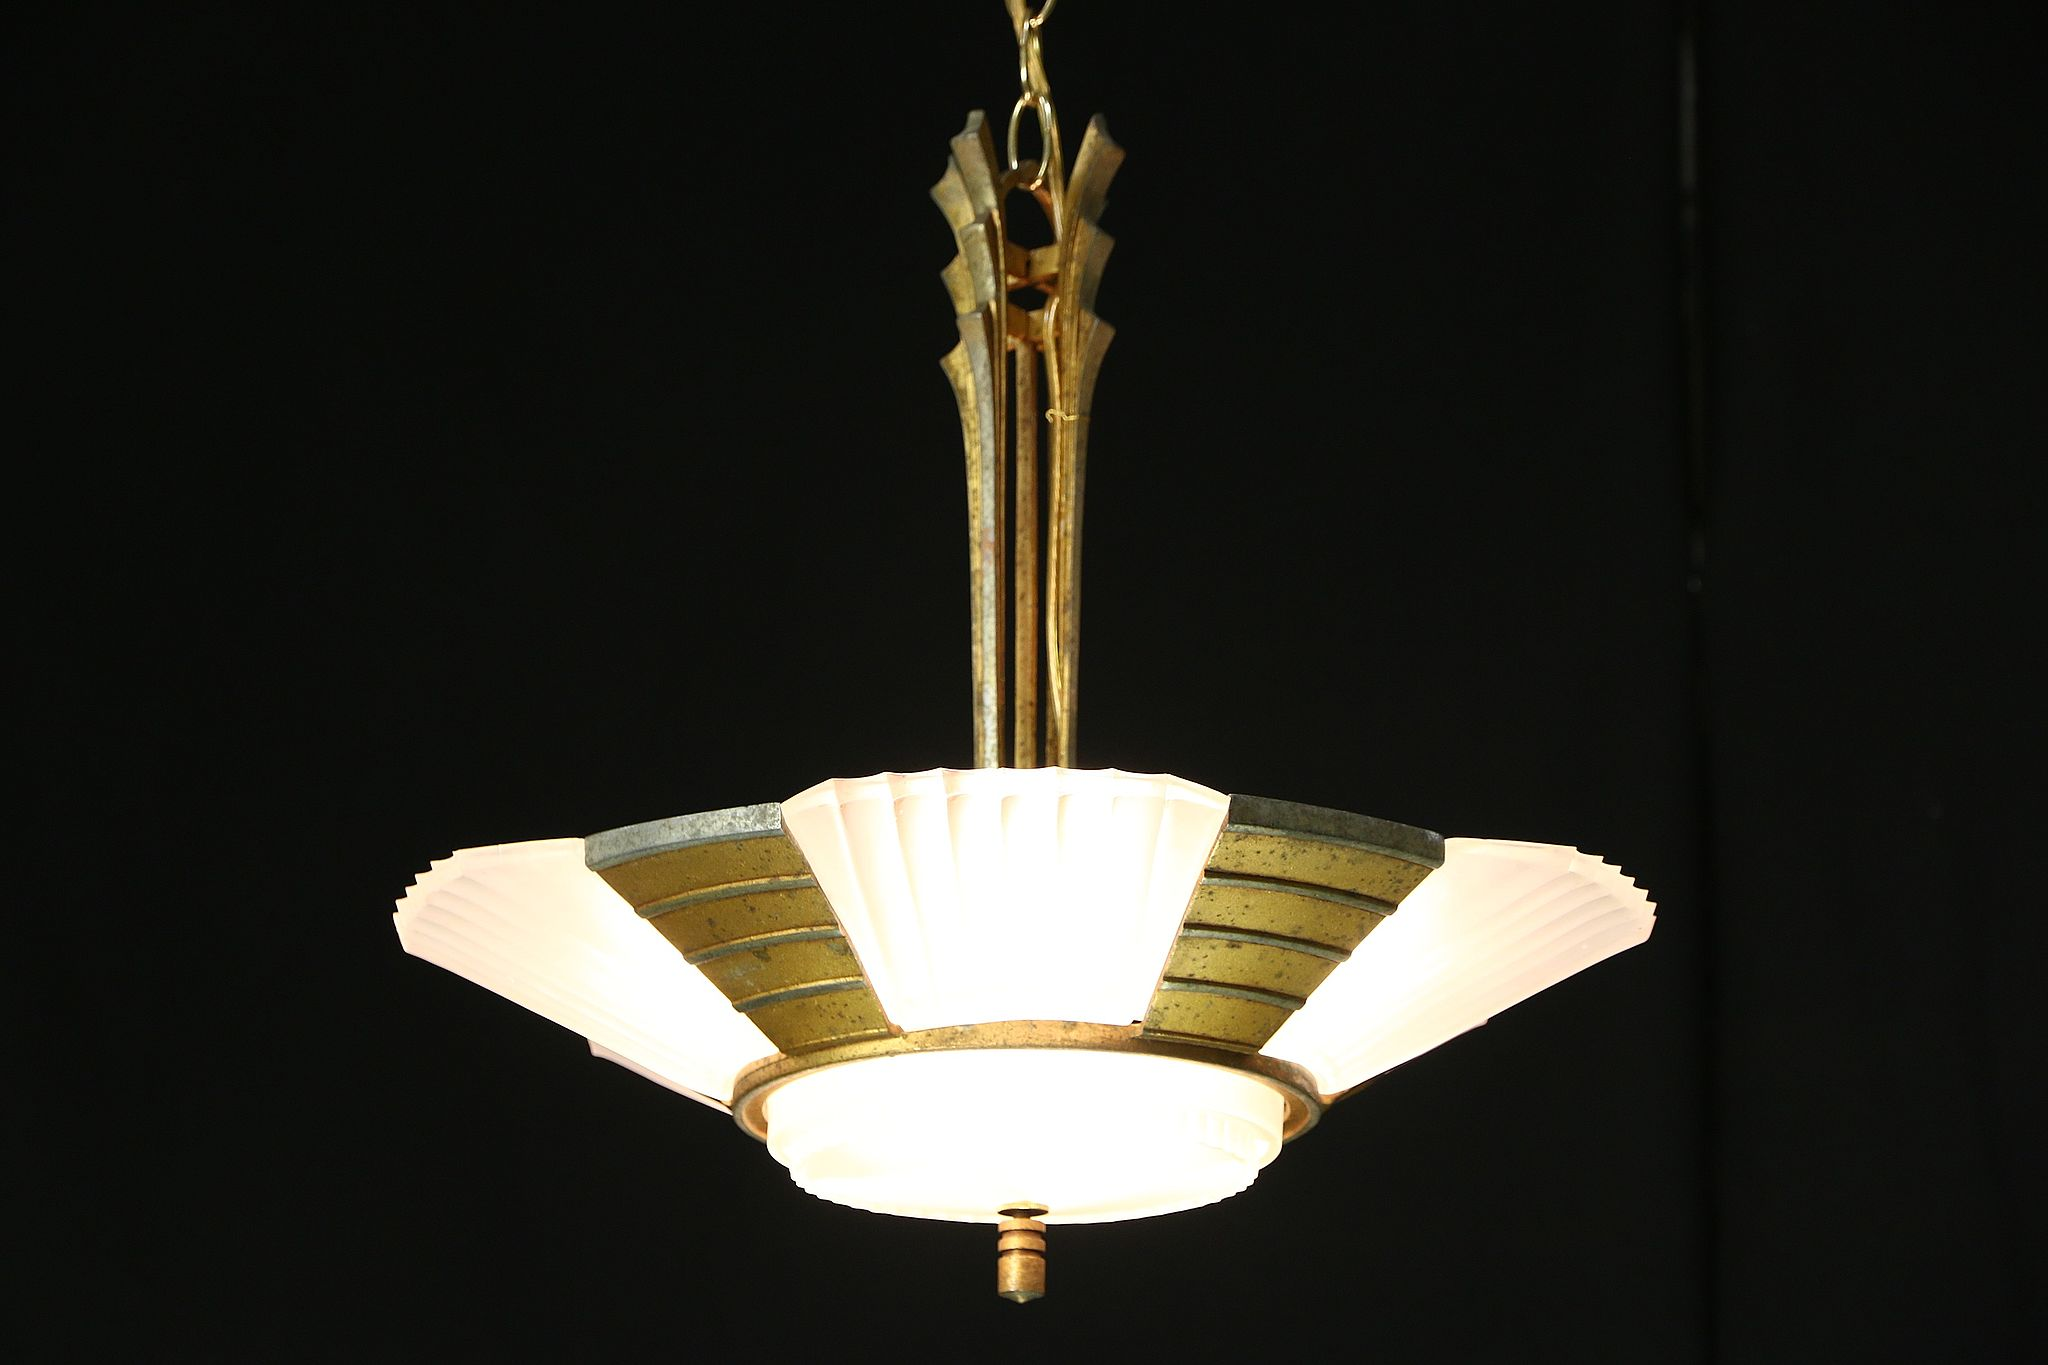 lights photos full lamp chandelier for replacement glass pendant size of shades inspirational modern luxury chandeliers